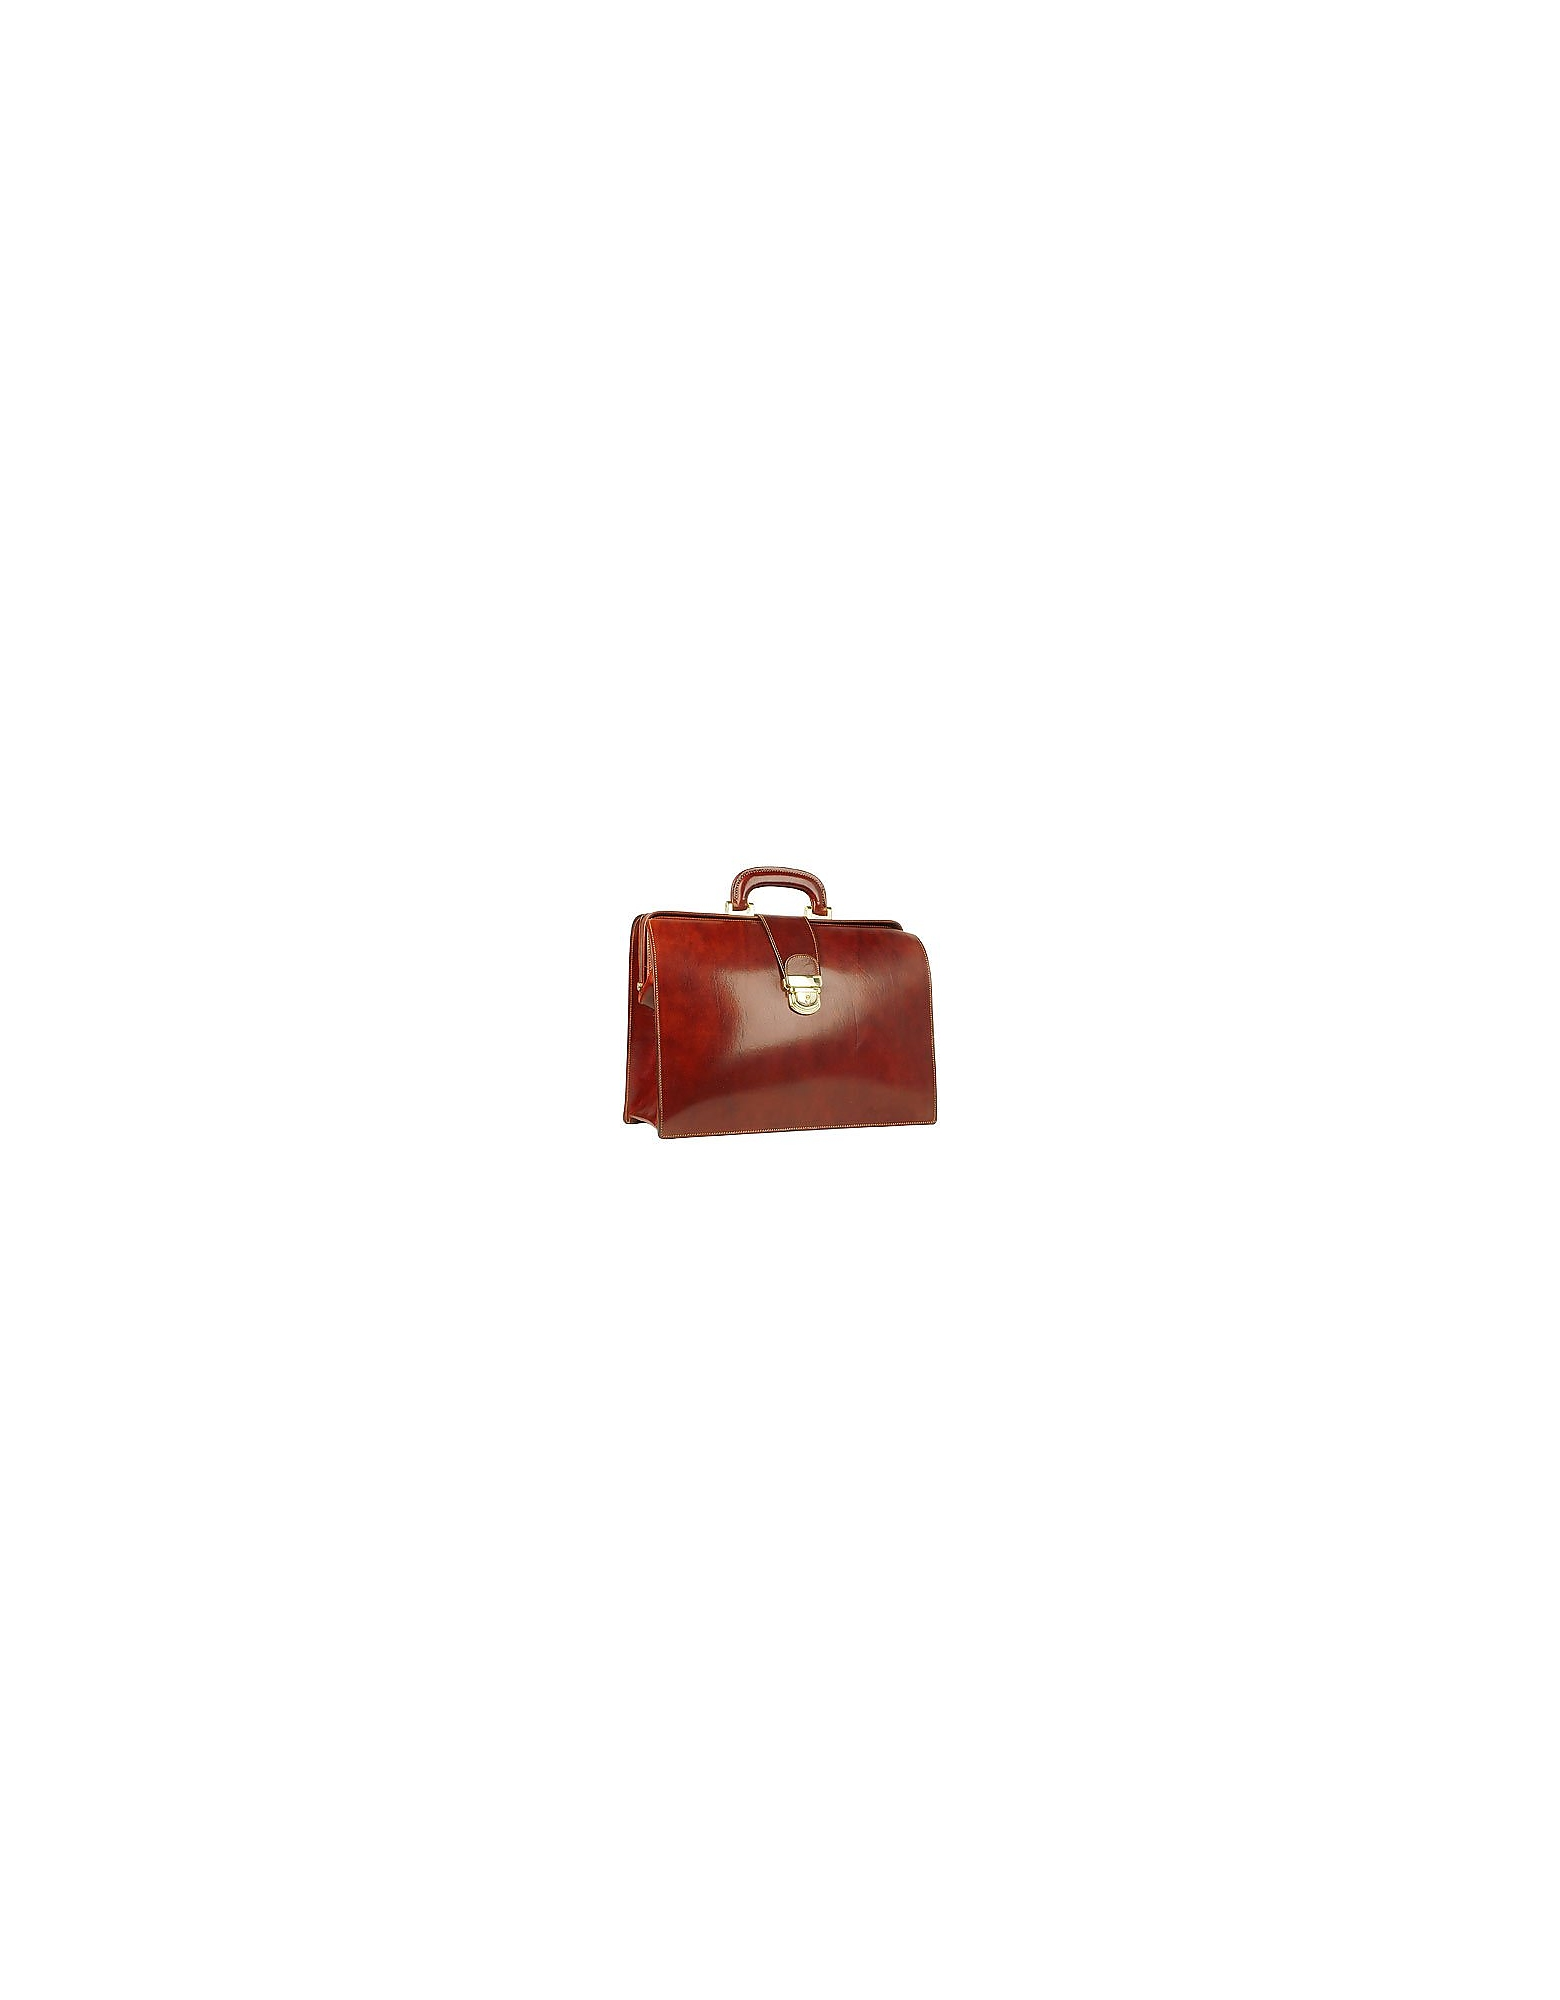 Image of Forzieri Designer Briefcases, Cognac Italian Leather Buckled Medium Doctor Bag